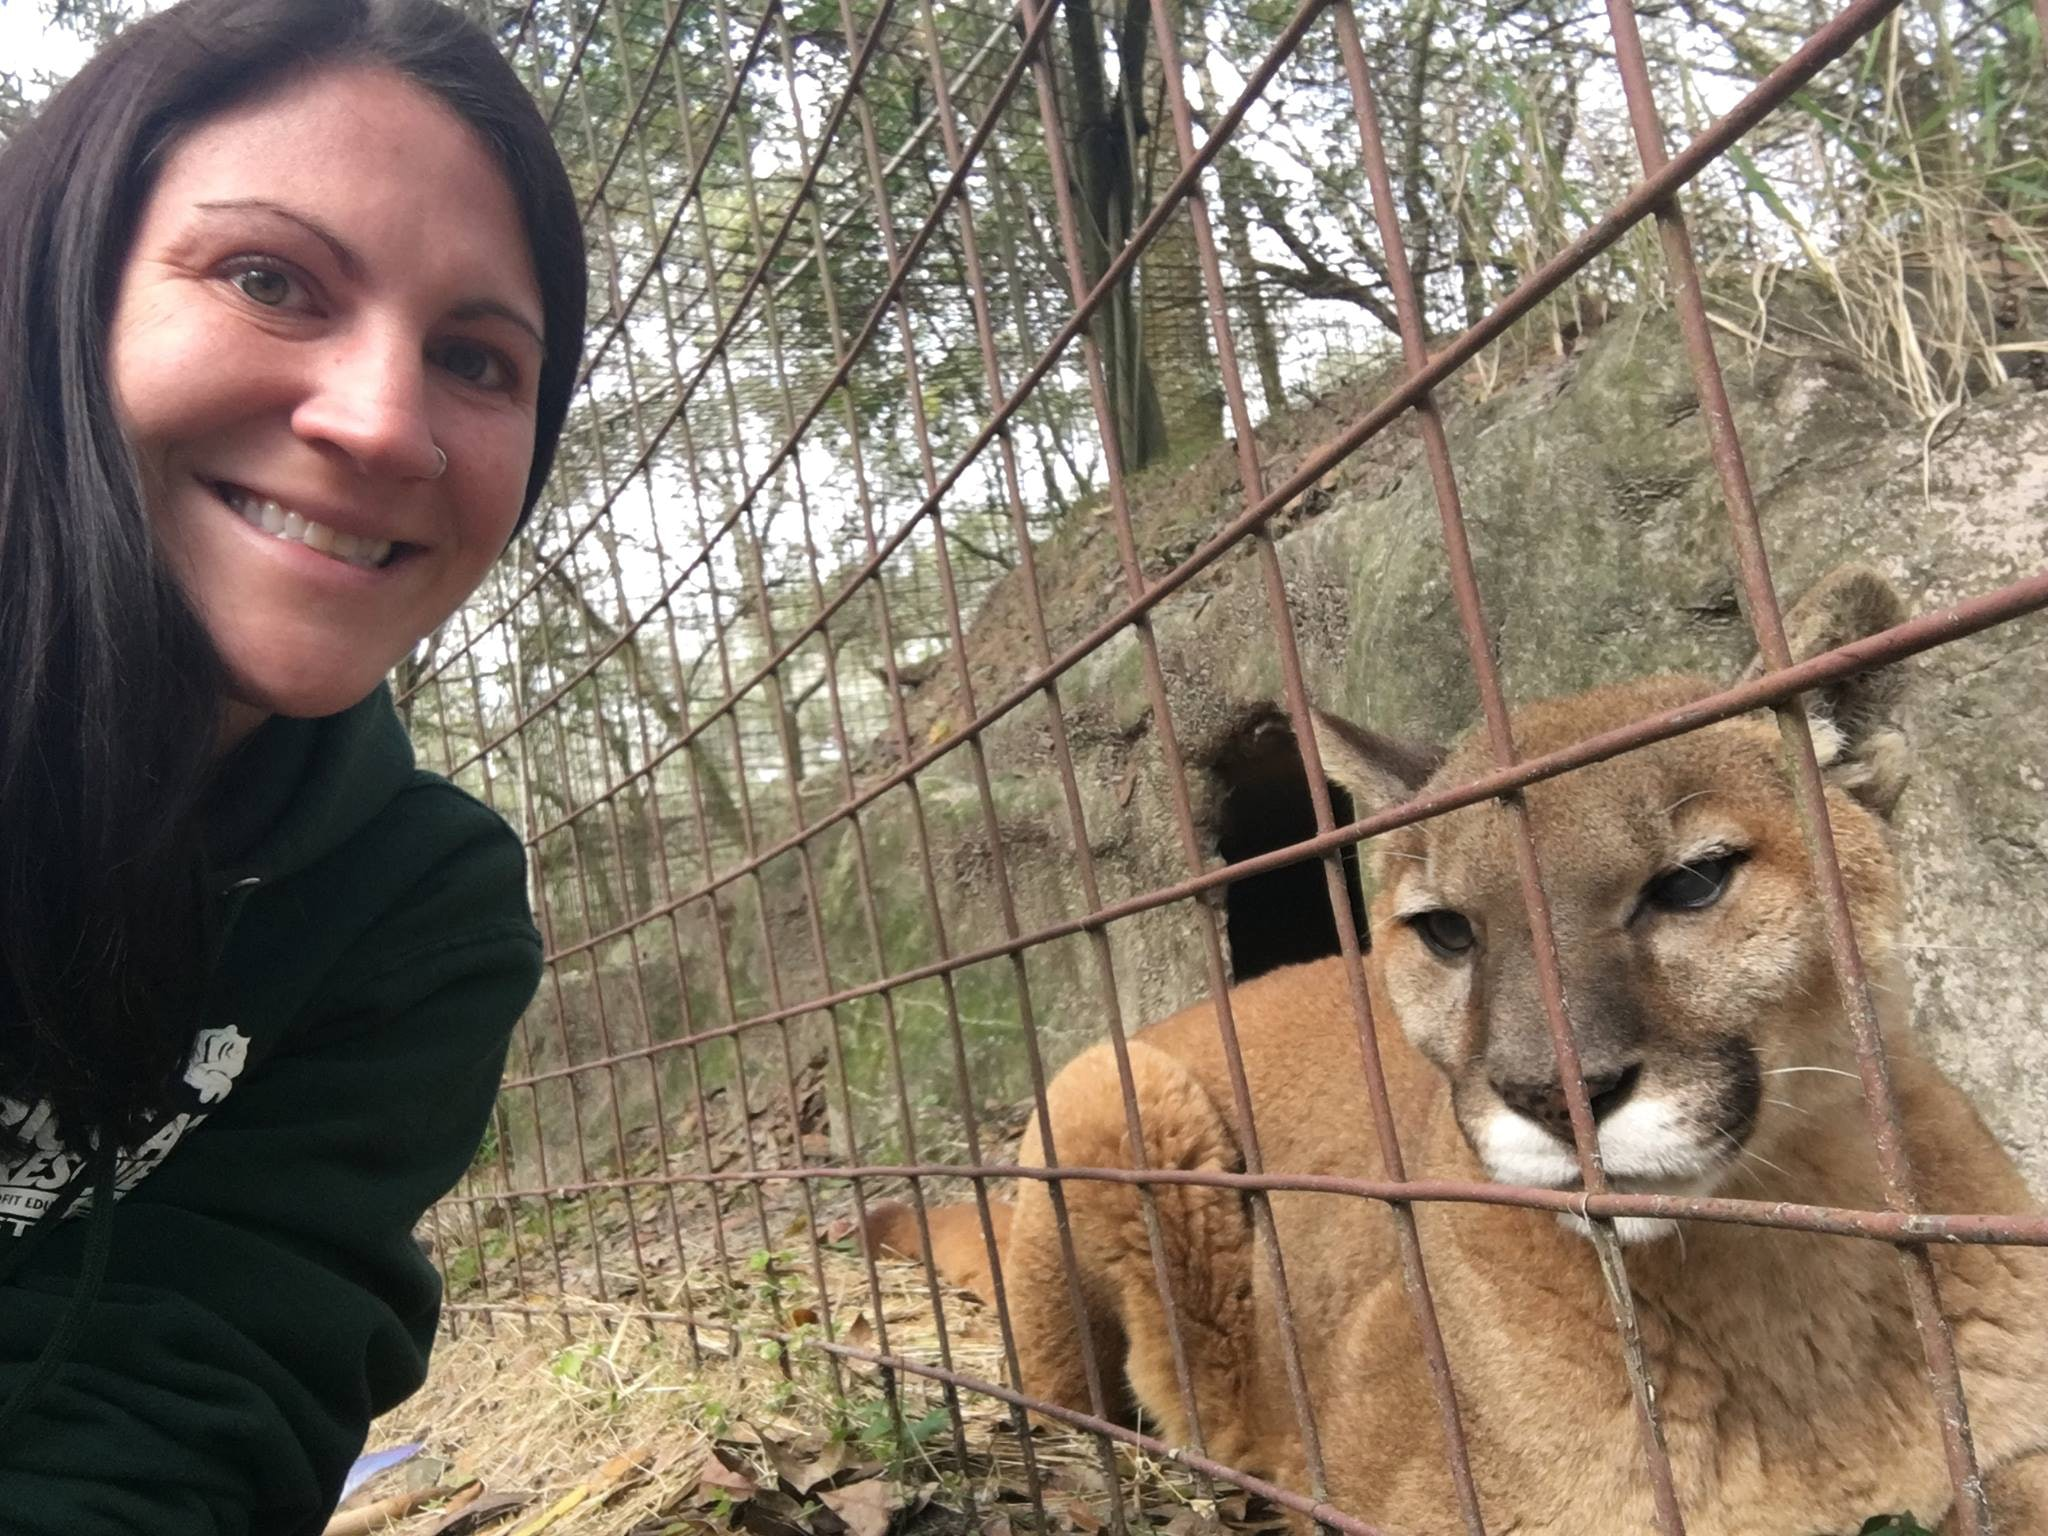 Big Cat Rescue's Videos Are Made By A Caring Woman Living